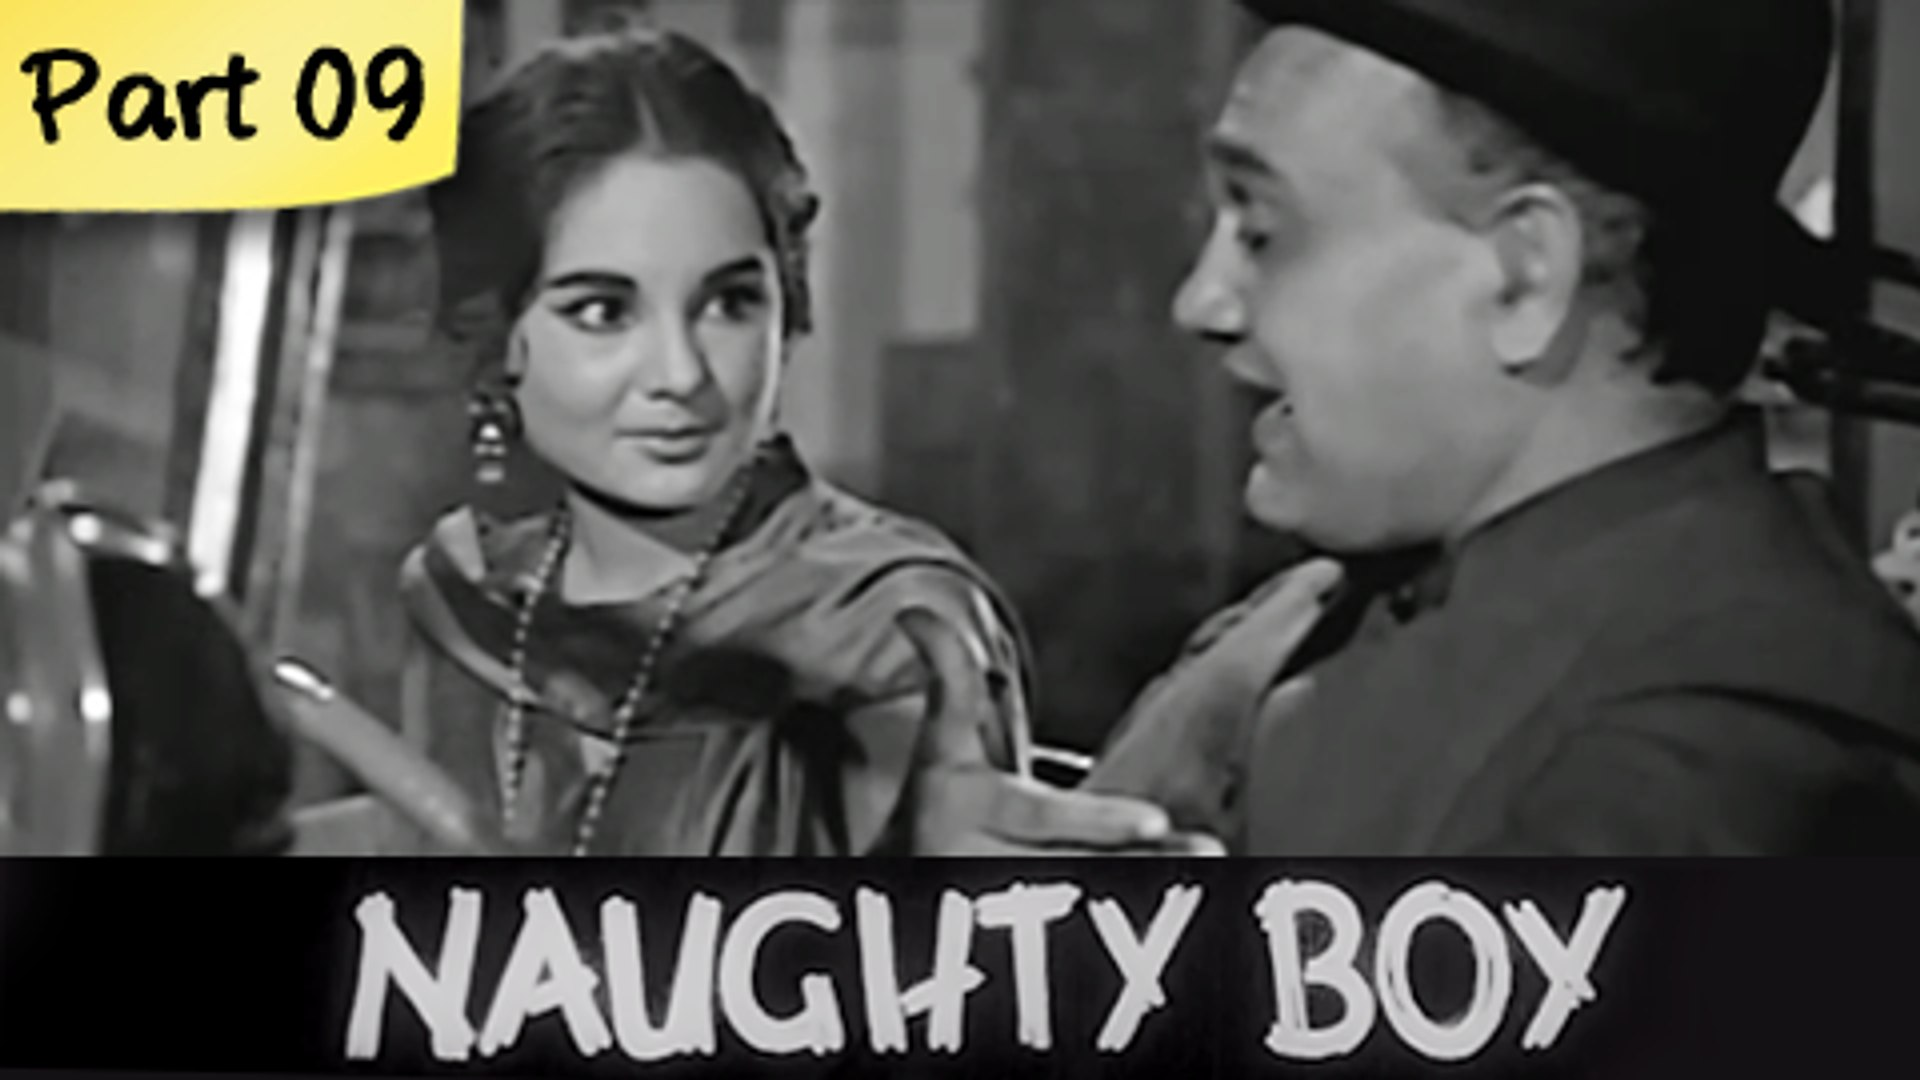 Naughty Boy - Part 09/09 - Classic Funny Hit Hindi Drama Movie - Kishore Kumar, Kalpana